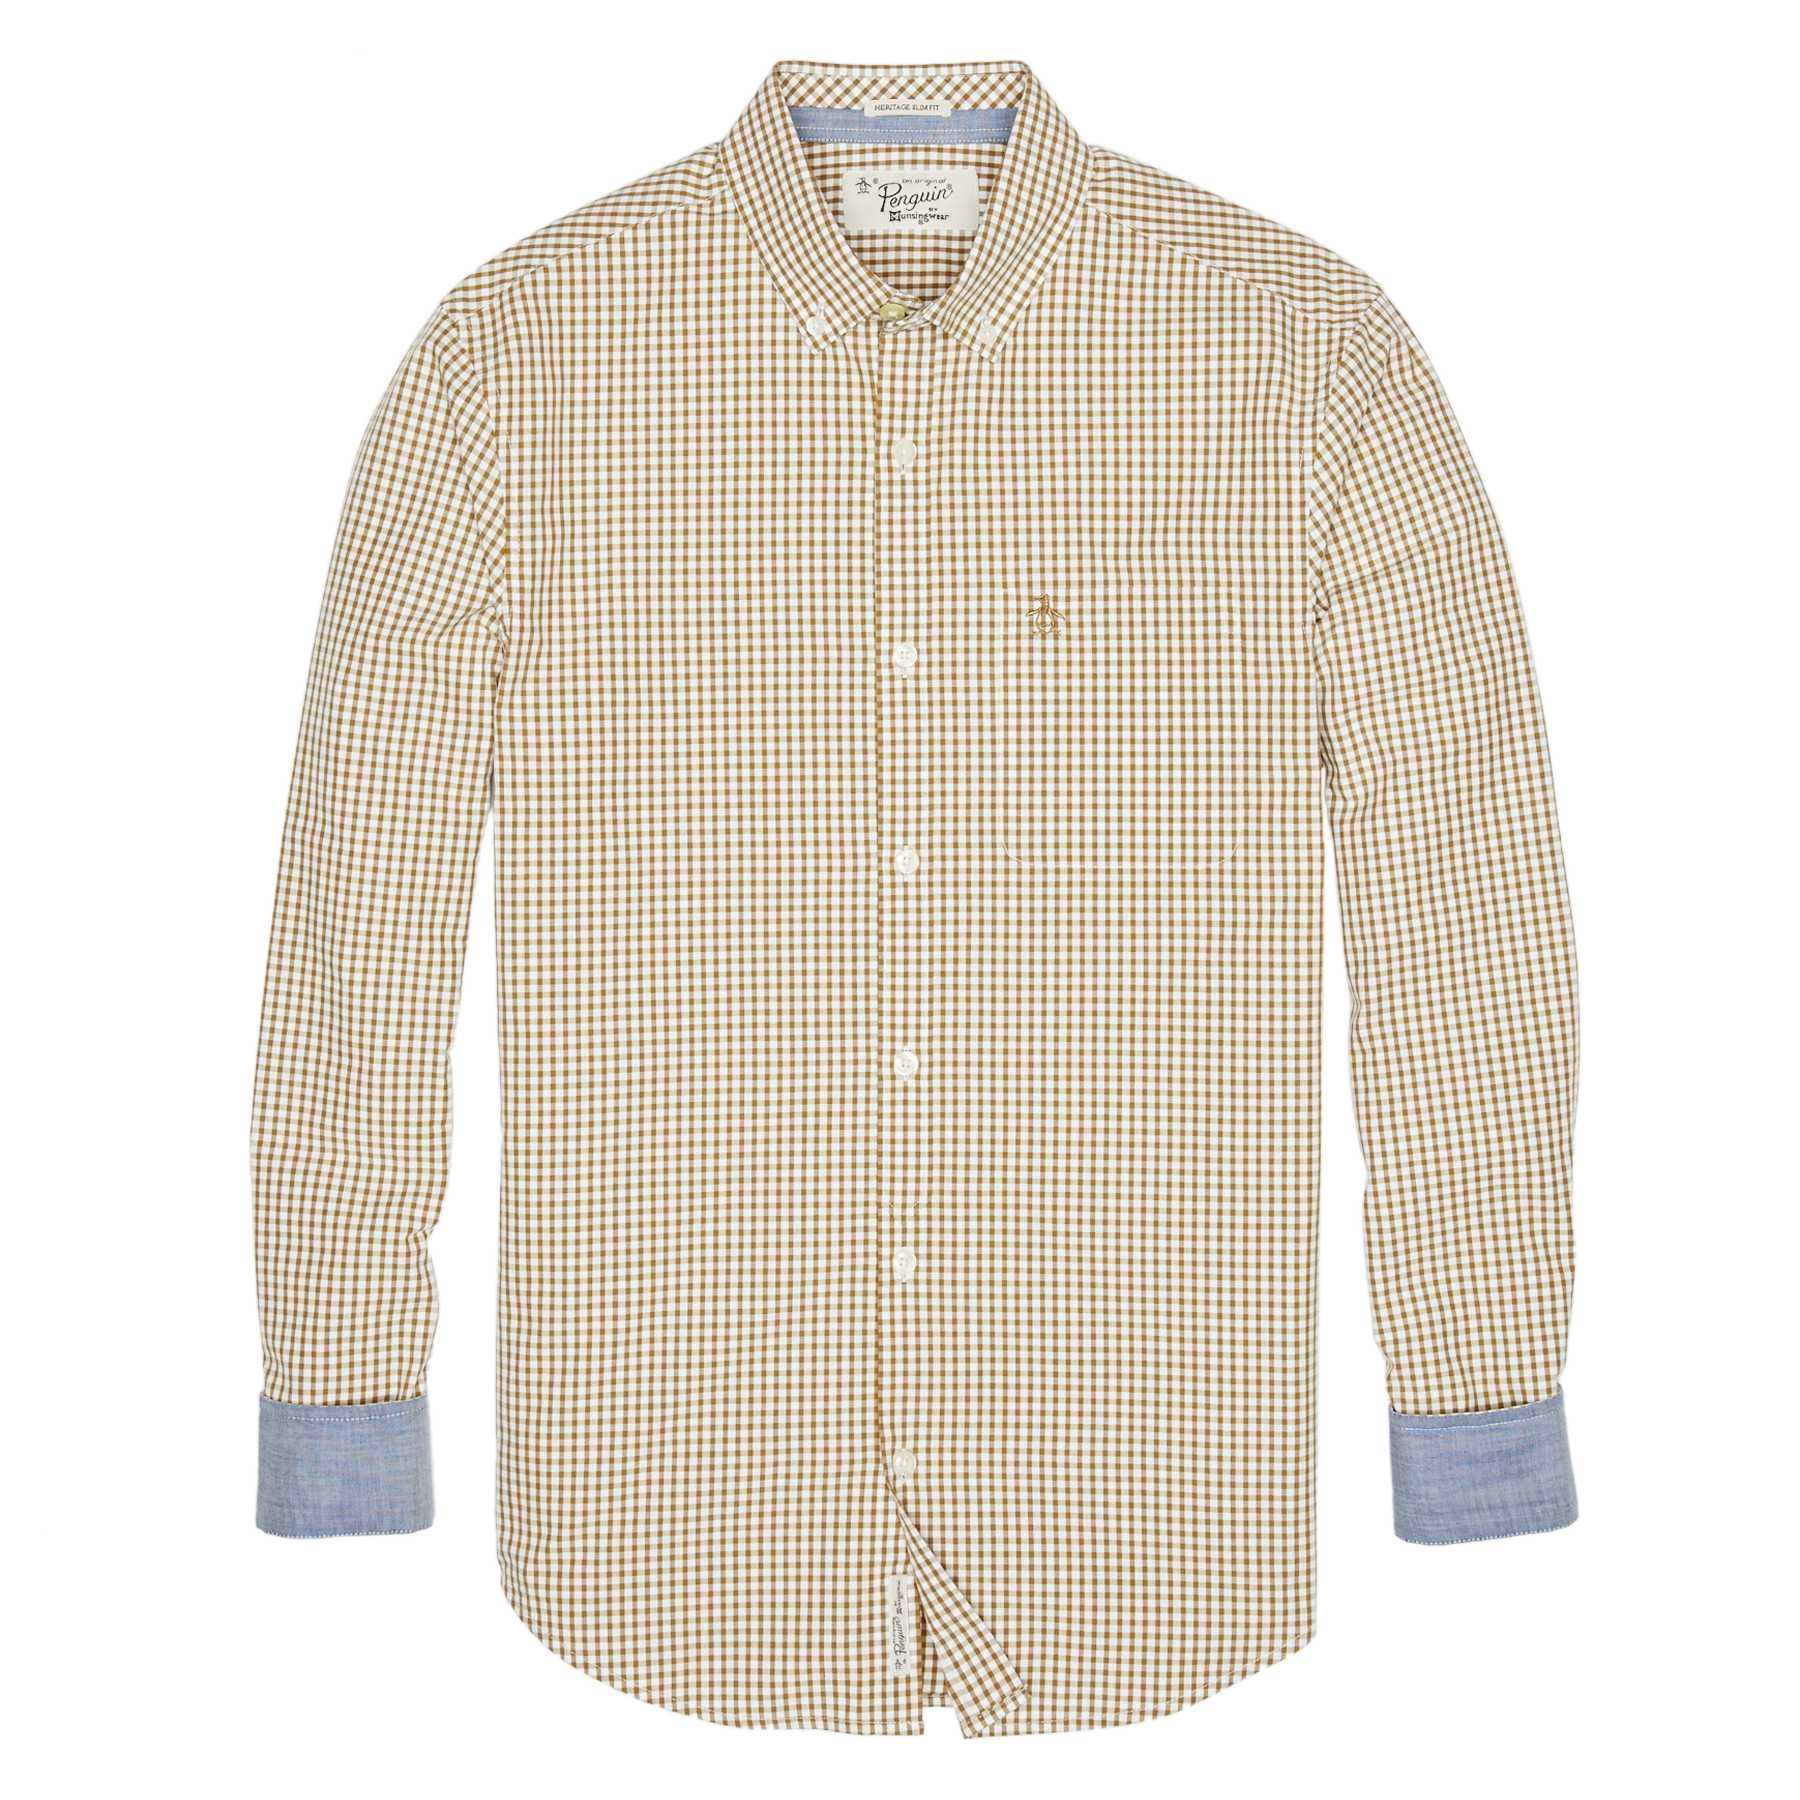 Original Penguin GINGHAM SHIRT